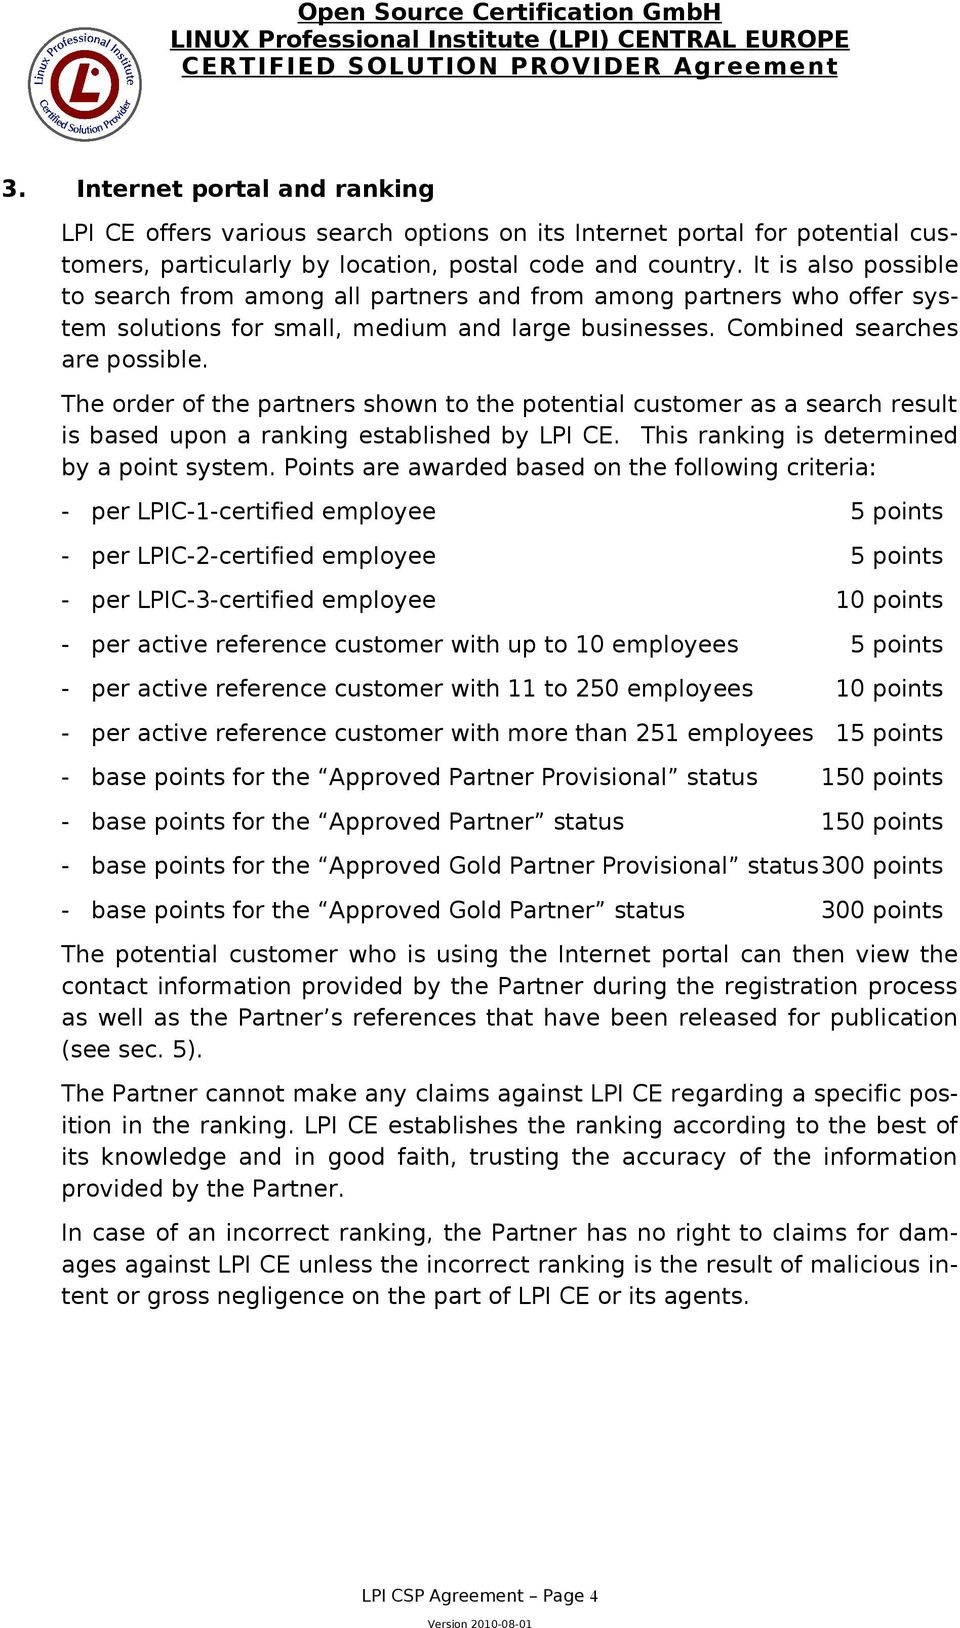 The order of the partners shown to the potential customer as a search result is based upon a ranking established by LPI CE. This ranking is determined by a point system.